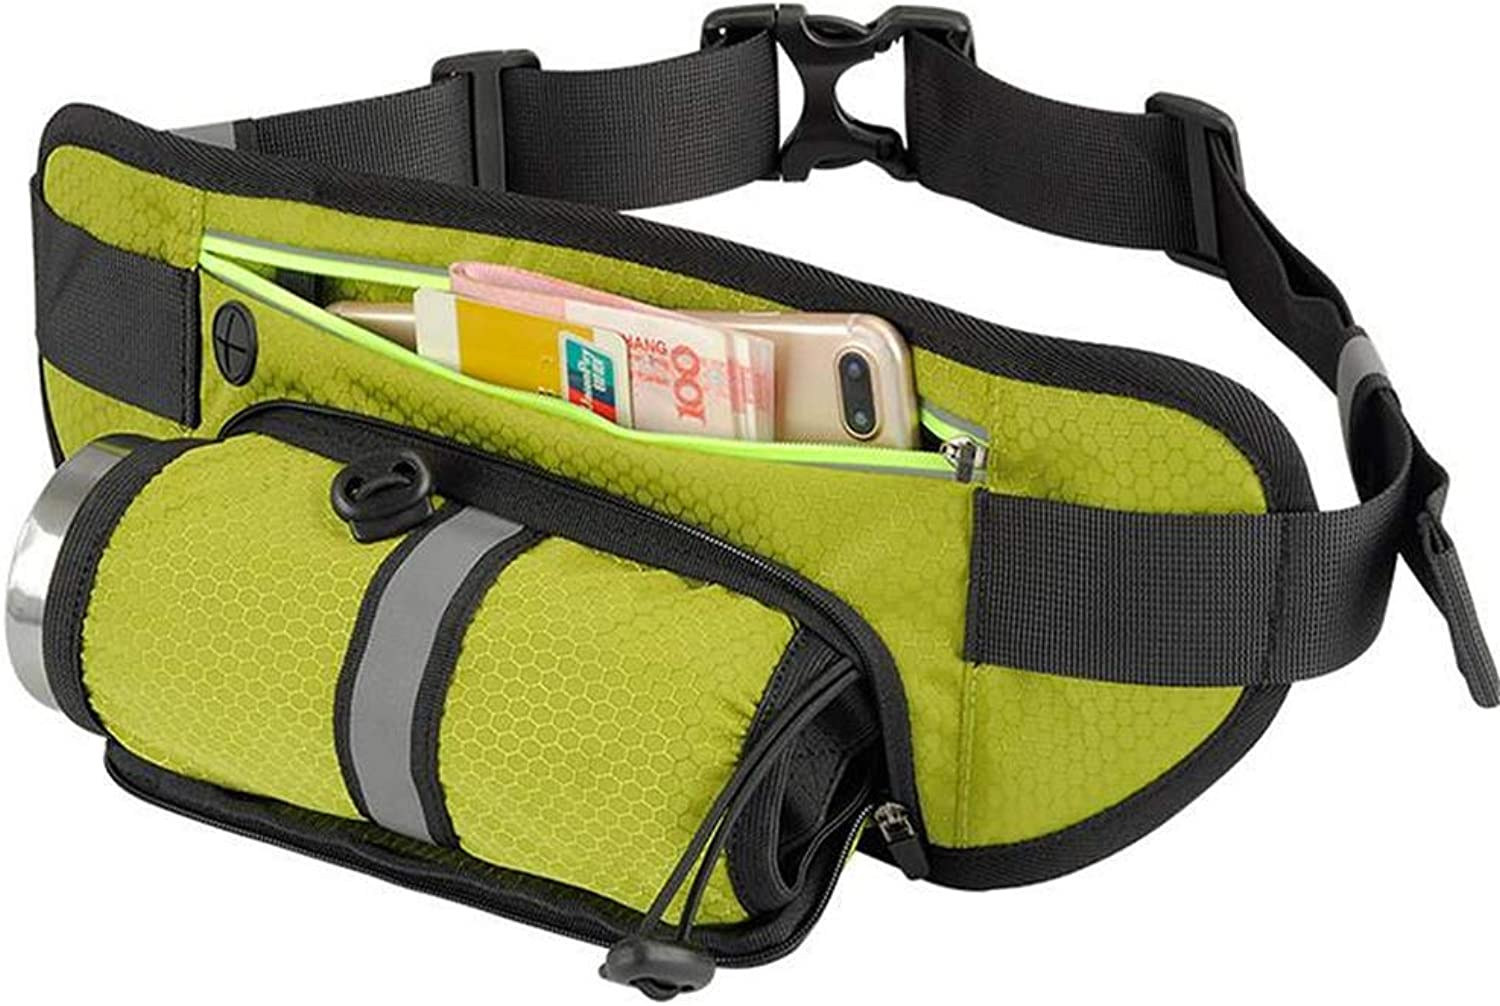 Hiking Pockets Running Belt SweatProof Sports Bag MultiFunctional Fitness Moisturizing Belt Comfortable and Flexible for All Sports Types Suitable for Men and Women,Yellow